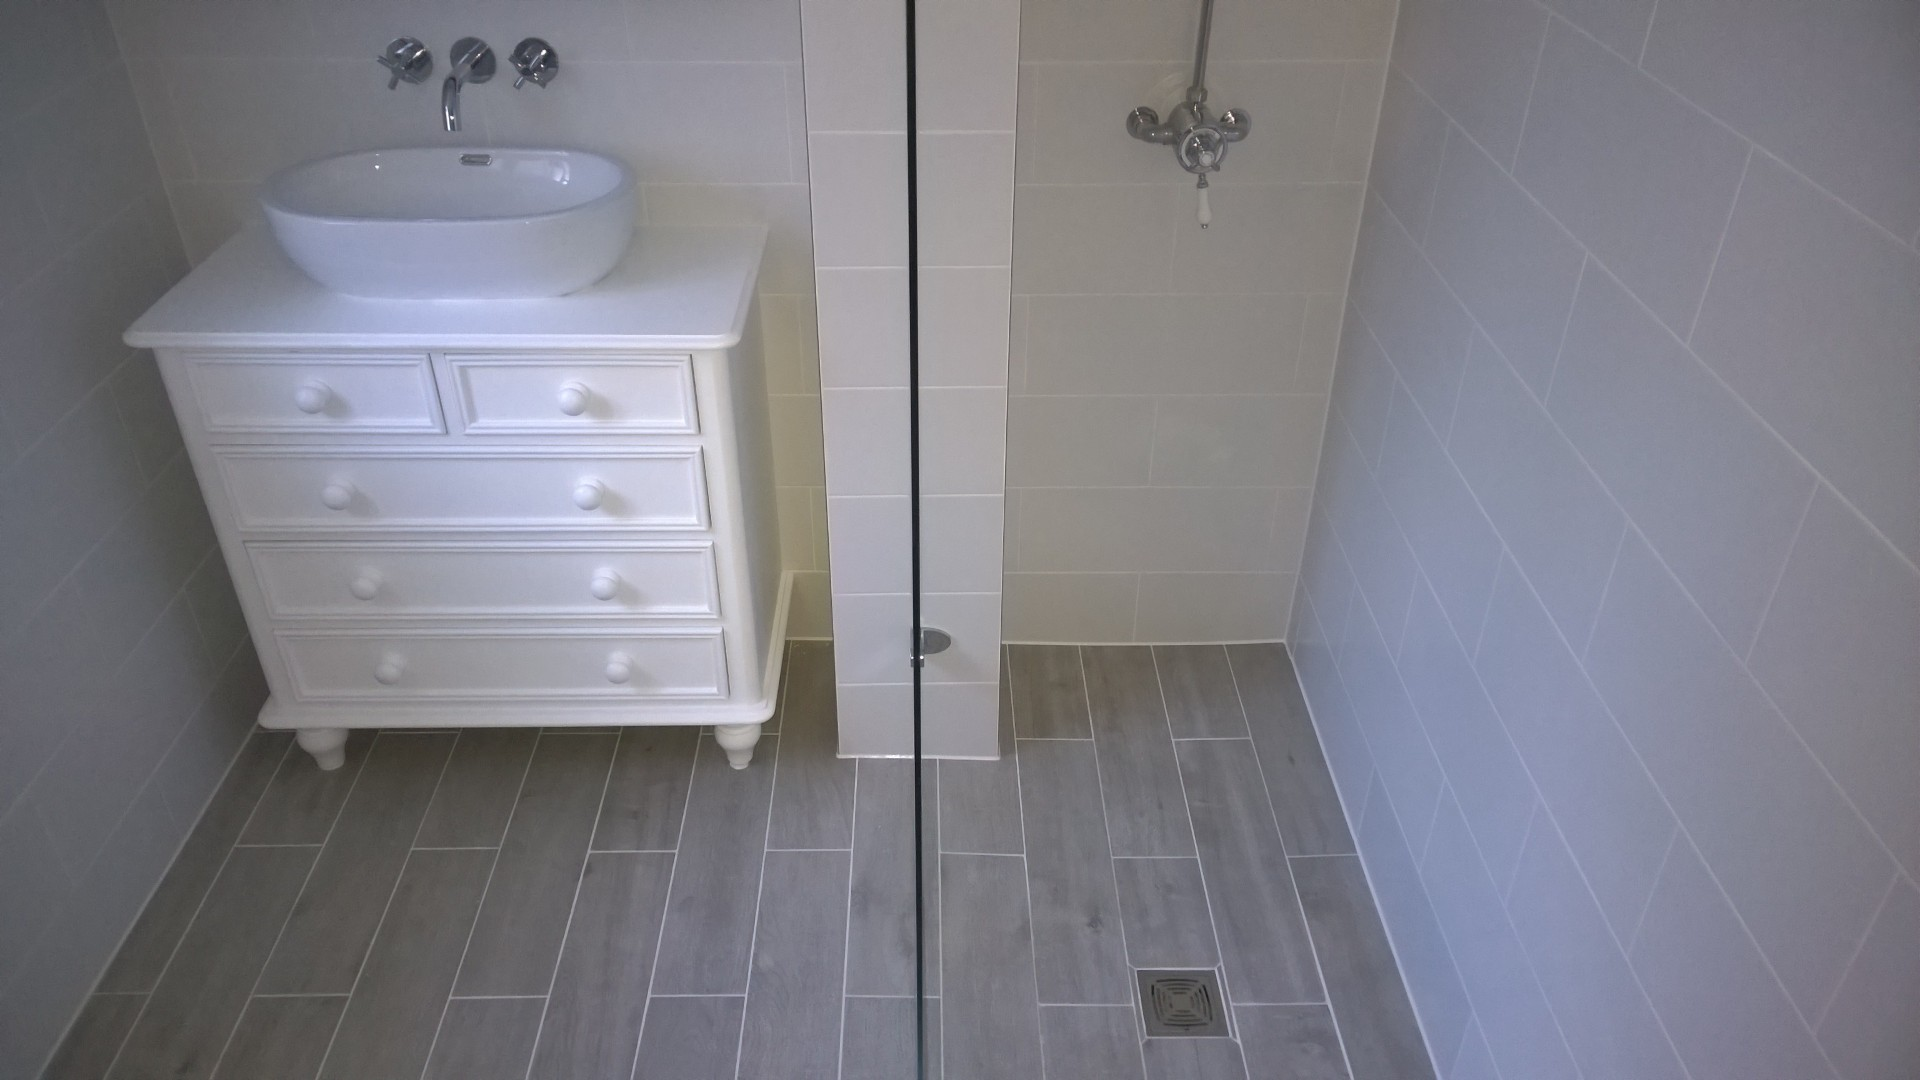 A wetroom shower with wood effect tiling and a vanity unit made from a reclaimed set of drawers